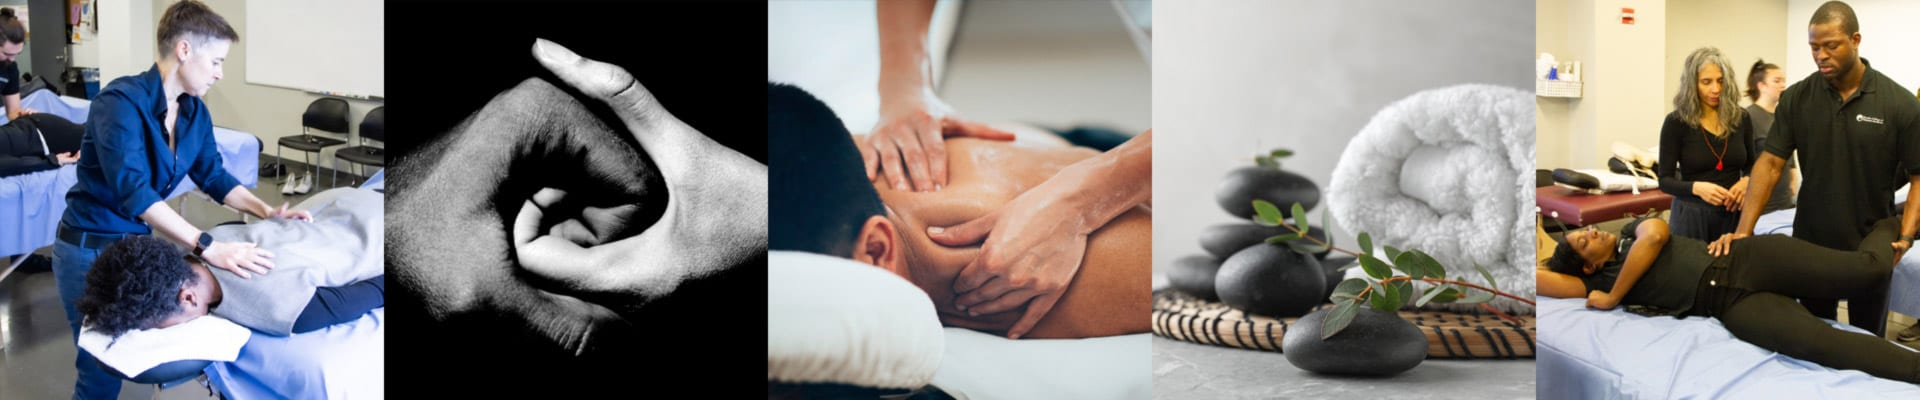 massage therapy school chicago banner